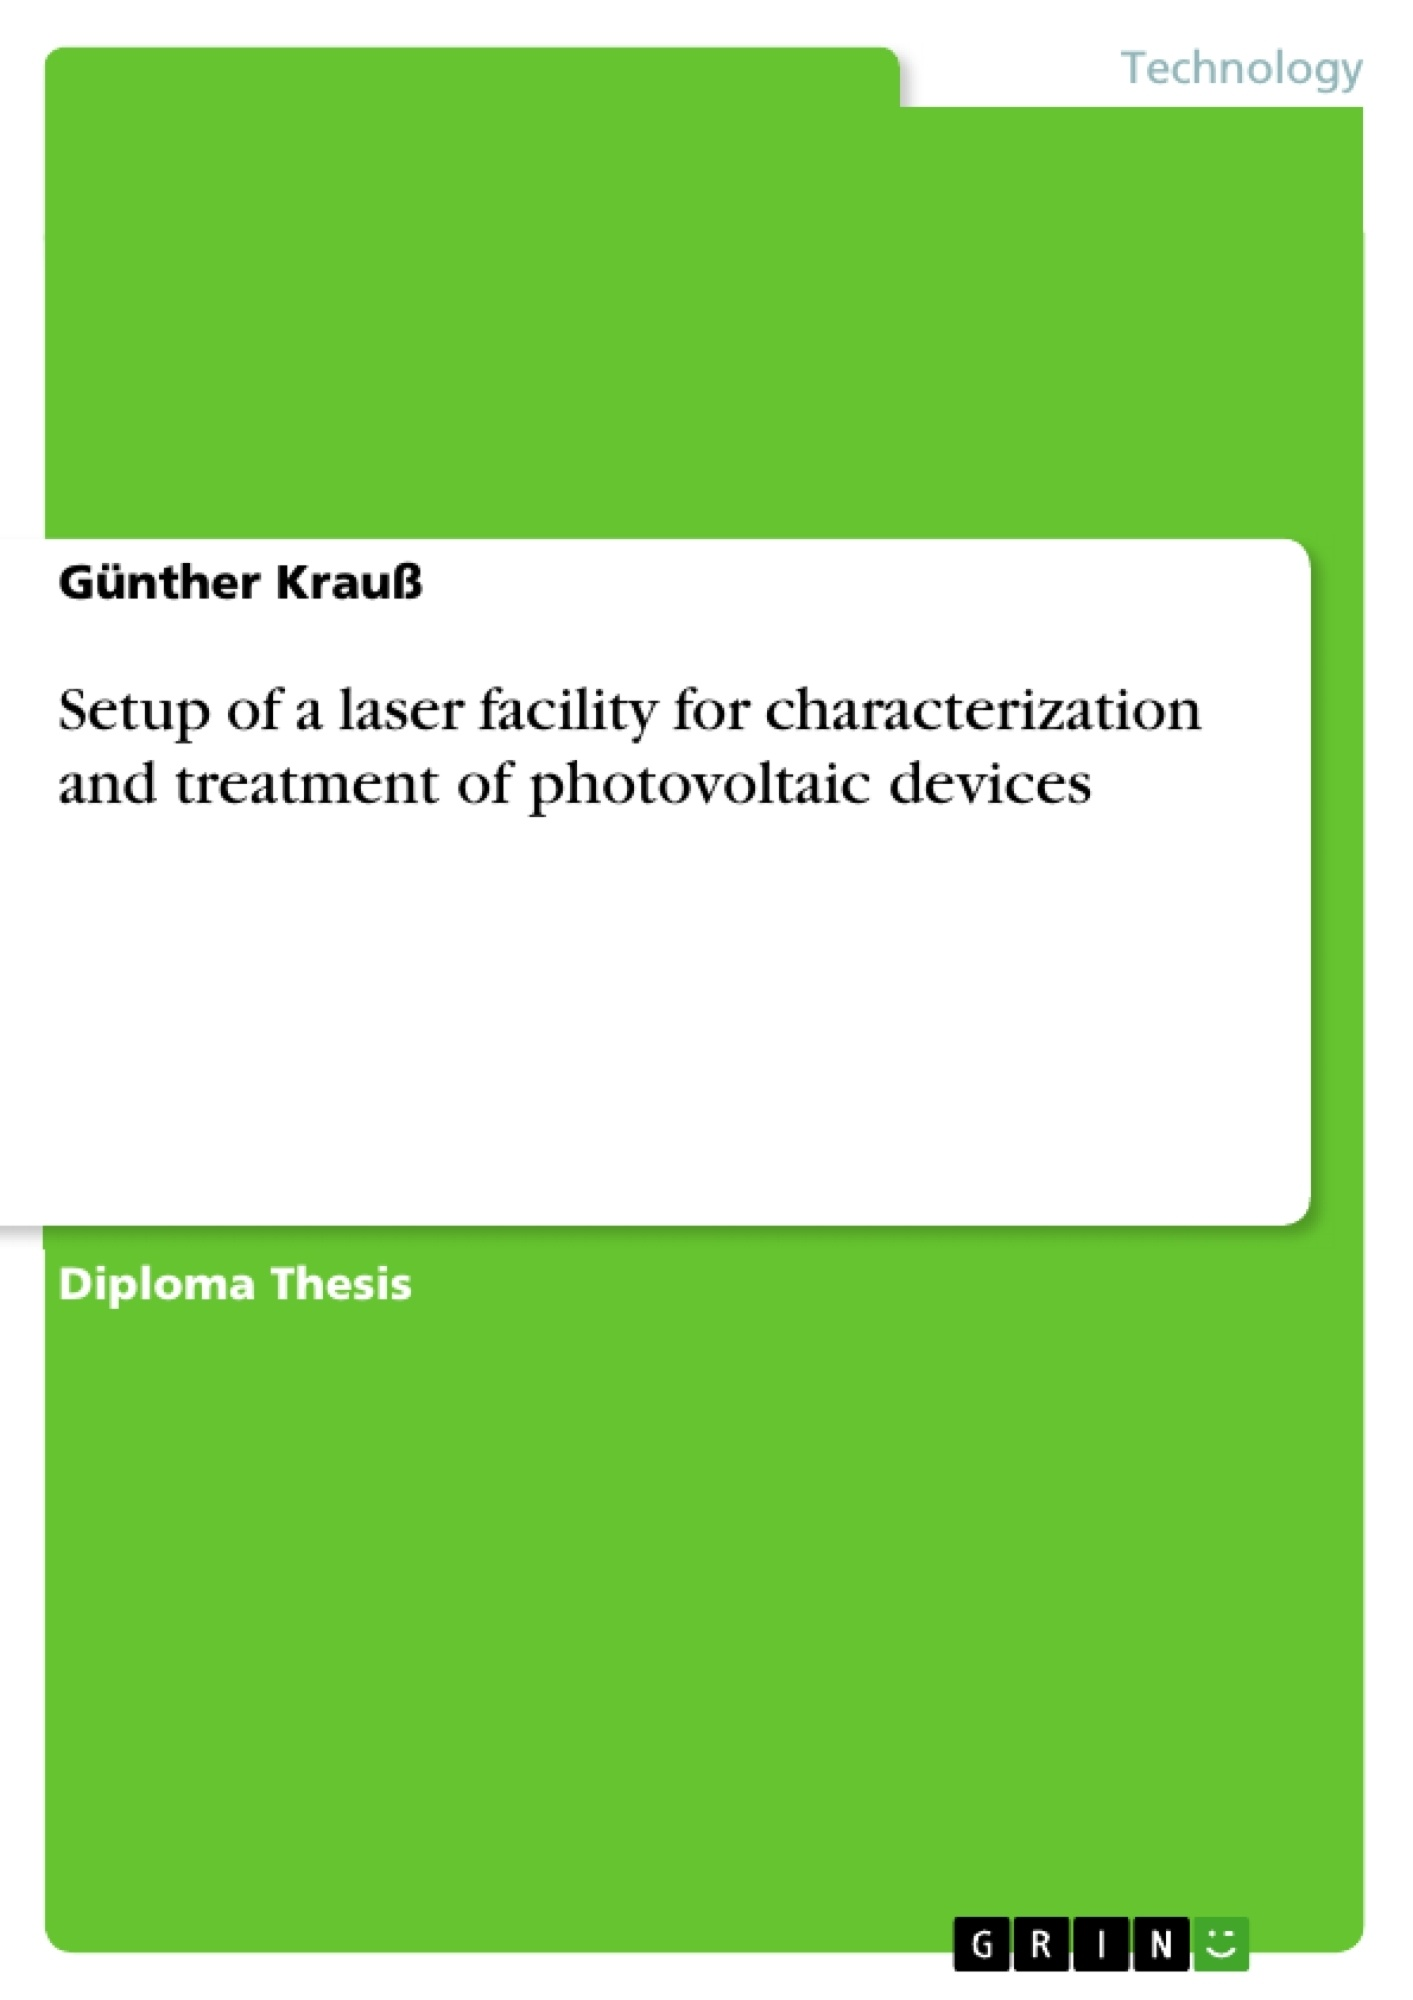 Title: Setup of a laser facility for characterization and treatment of photovoltaic devices